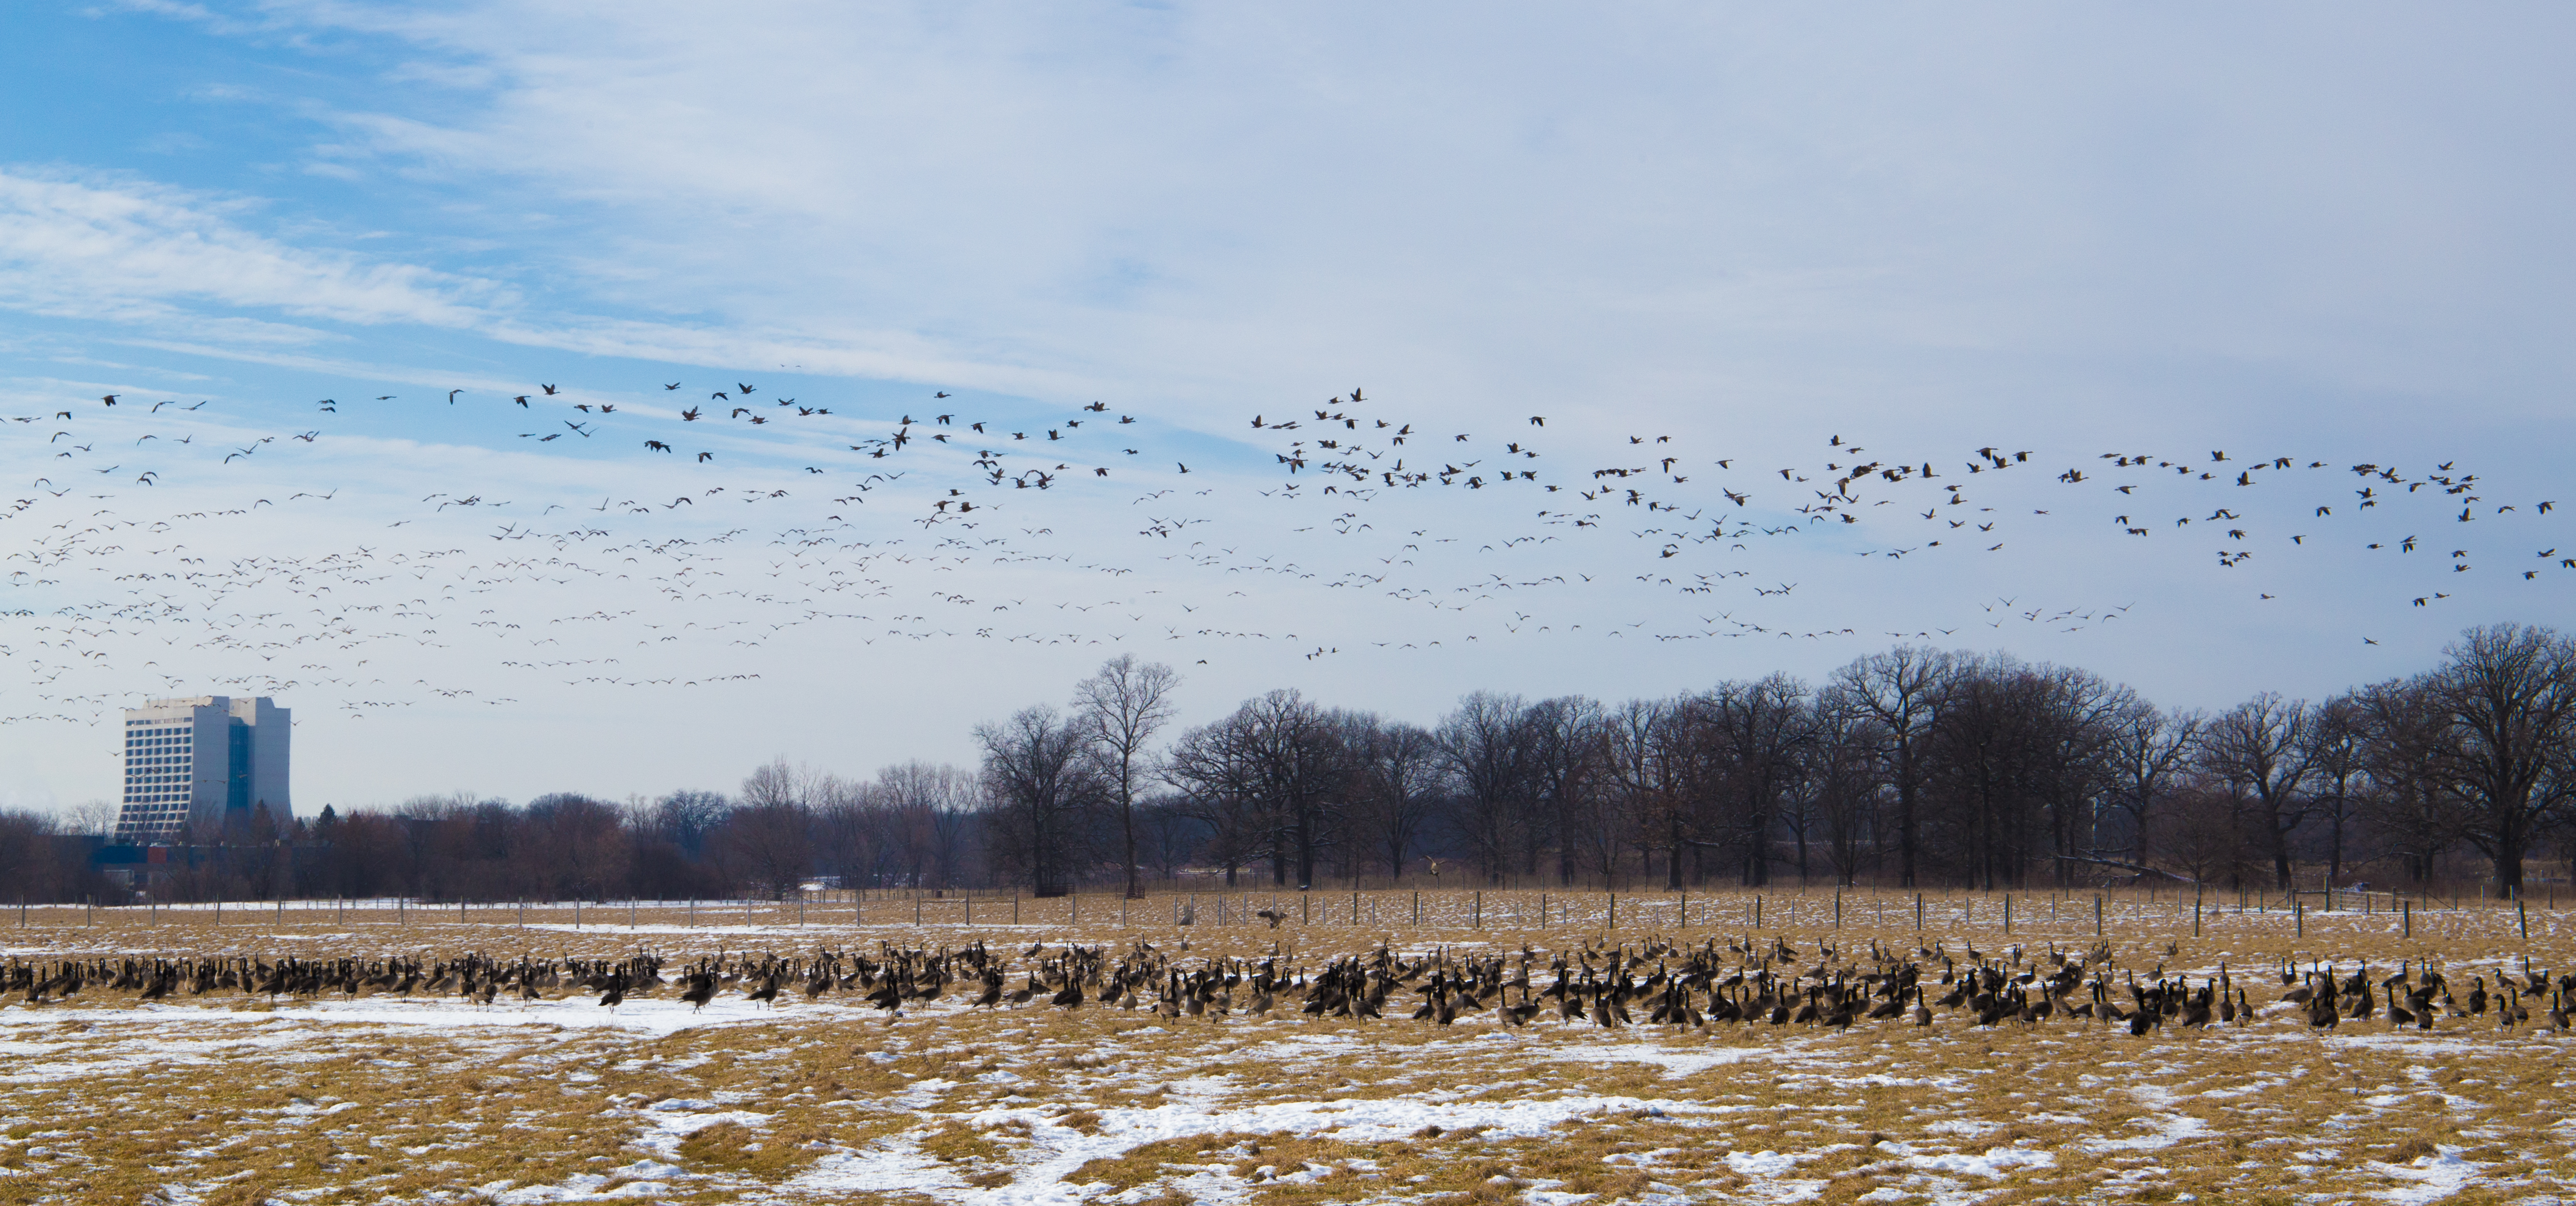 Geese flee as Fermilab Herdsman Cleo Garcia drives through pasture to check up on the lab's bison. Photo: Rashmi Shivni, OC